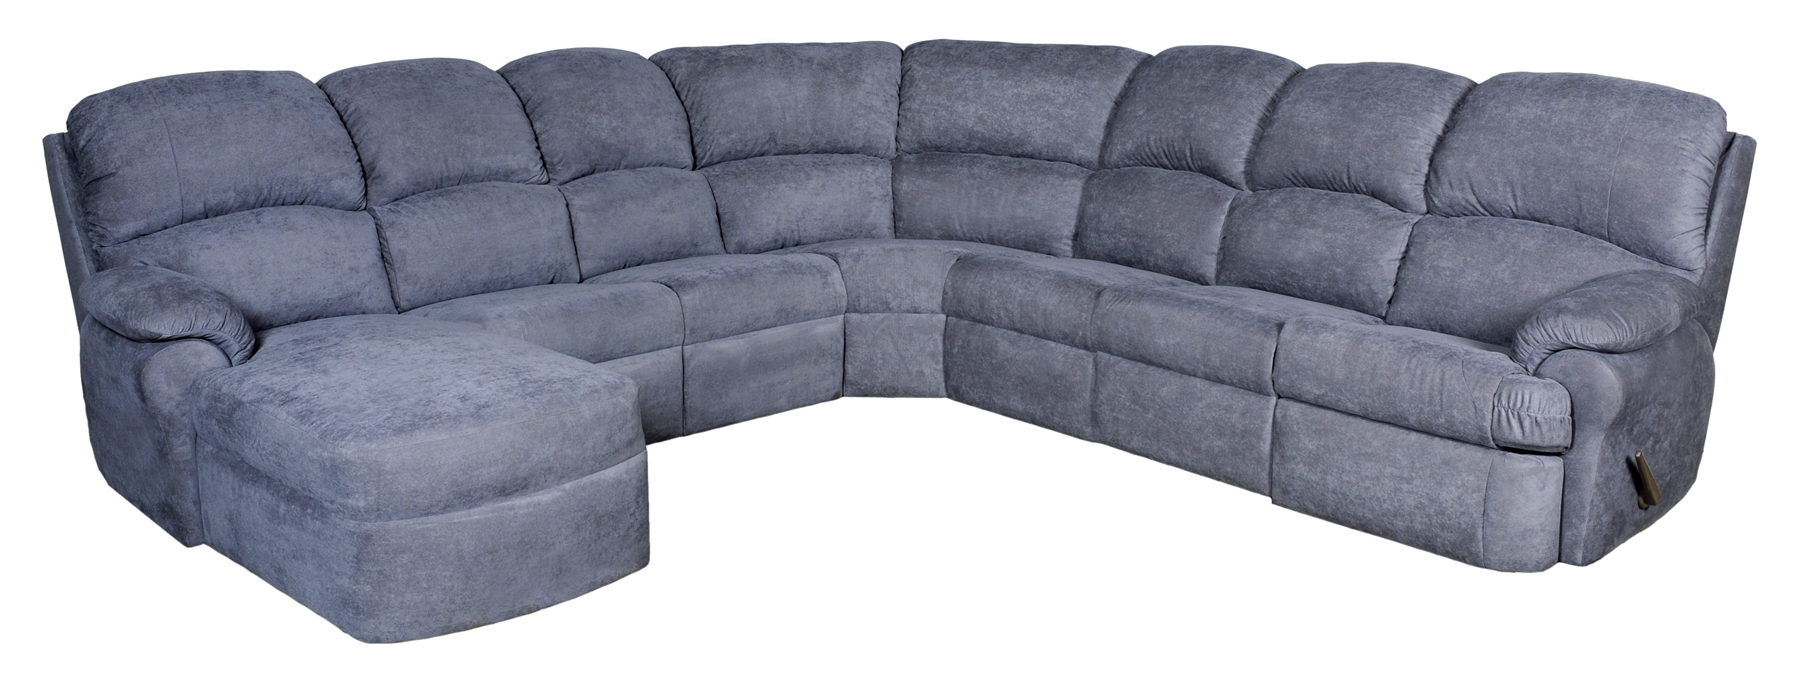 Sofa Lounge Gold Coast Hilton Modular Chaise